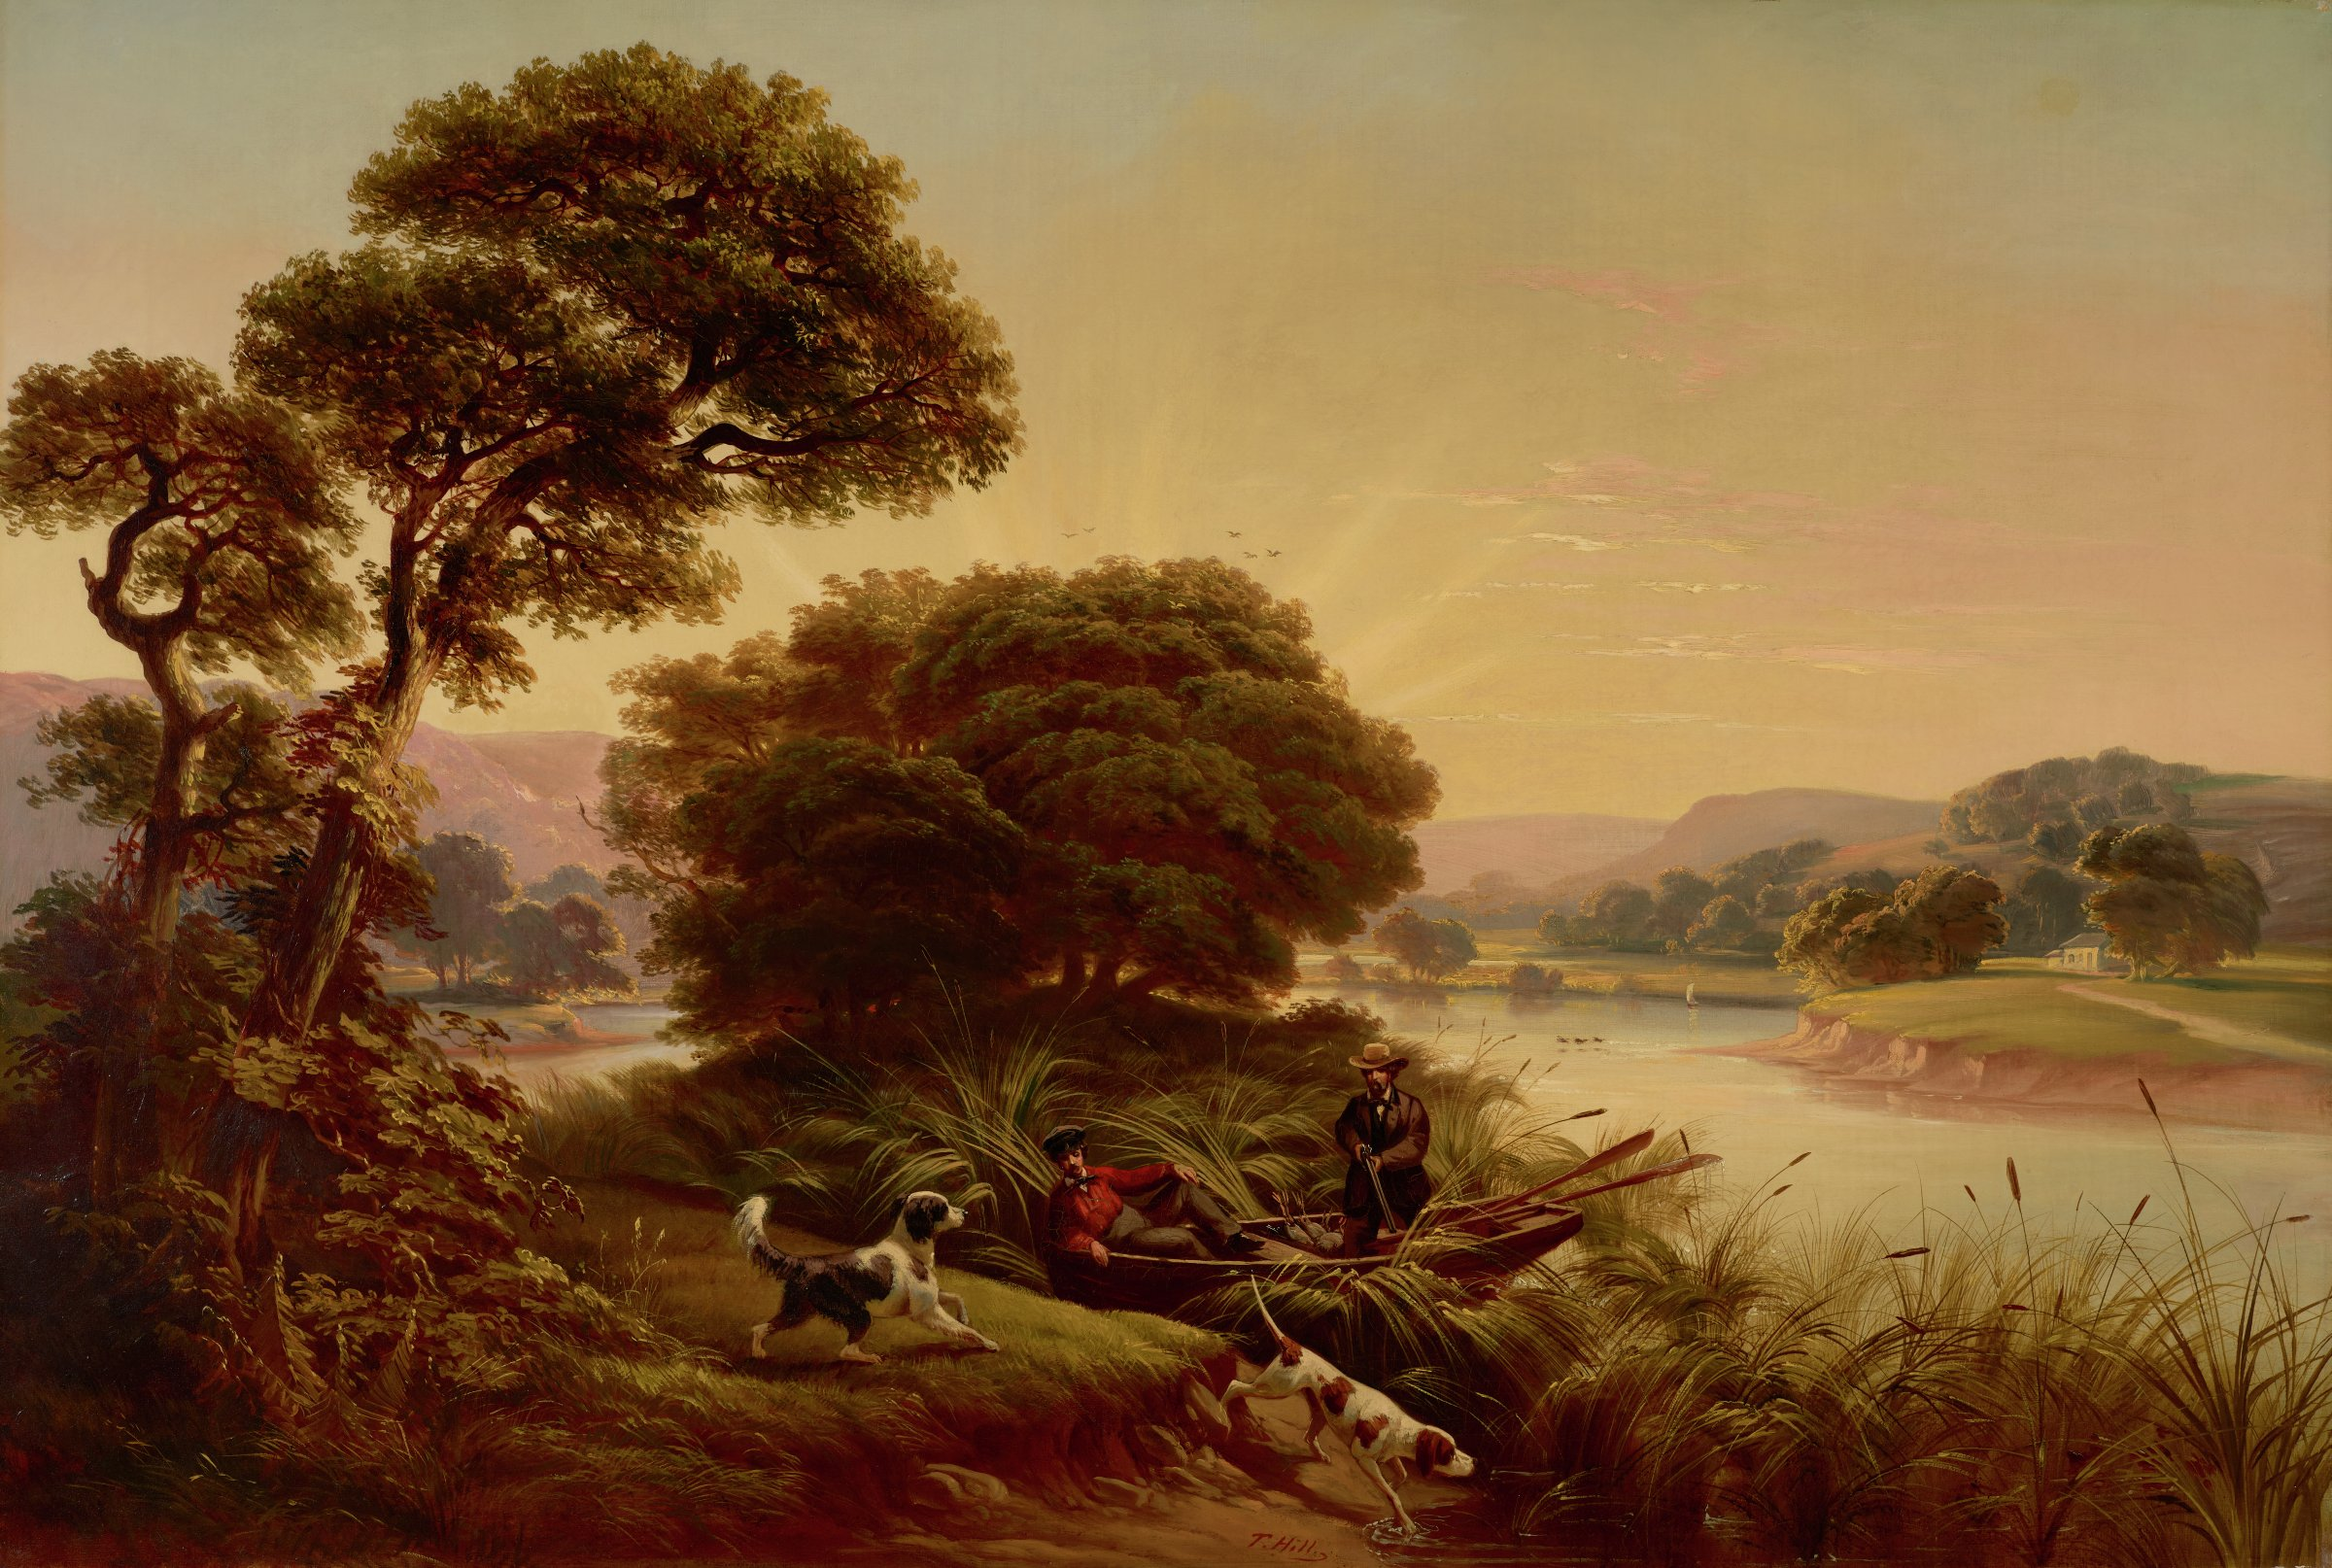 This landscape painting represents an expansive scene with two dogs on a foreground shore, and two men in a rowboat at the edge of a body of water heavily overgrown with water grasses. There are trees in the left foreground and behind the men, as well as an open body of water. On the bank of land across the body of water is a home situated in a landscape that includes low, rolling mountains.